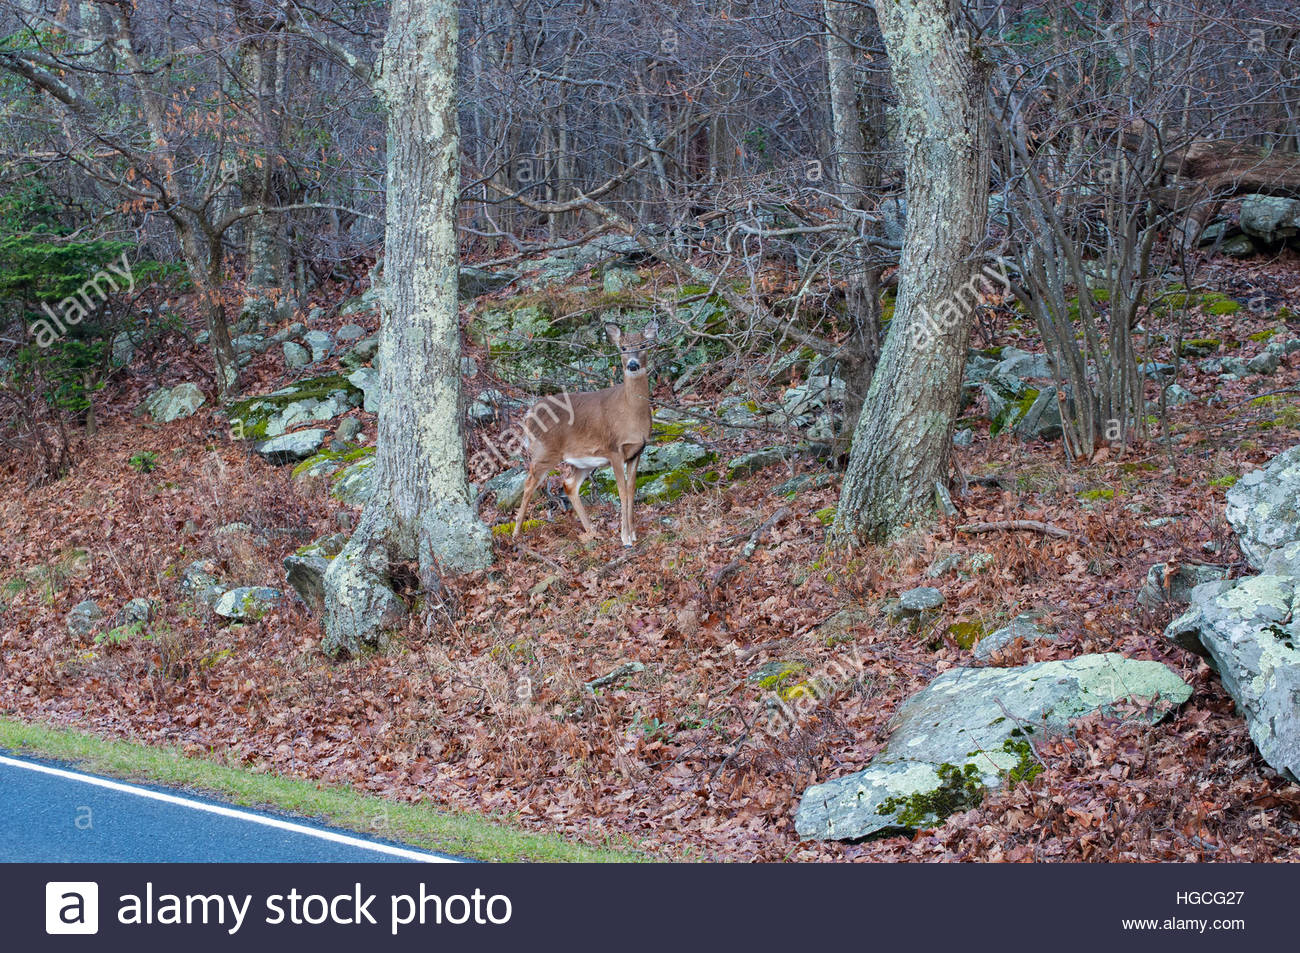 Deer in Southern Appalachia off Skyline Drive, Shenandoah National Park - Stock Image